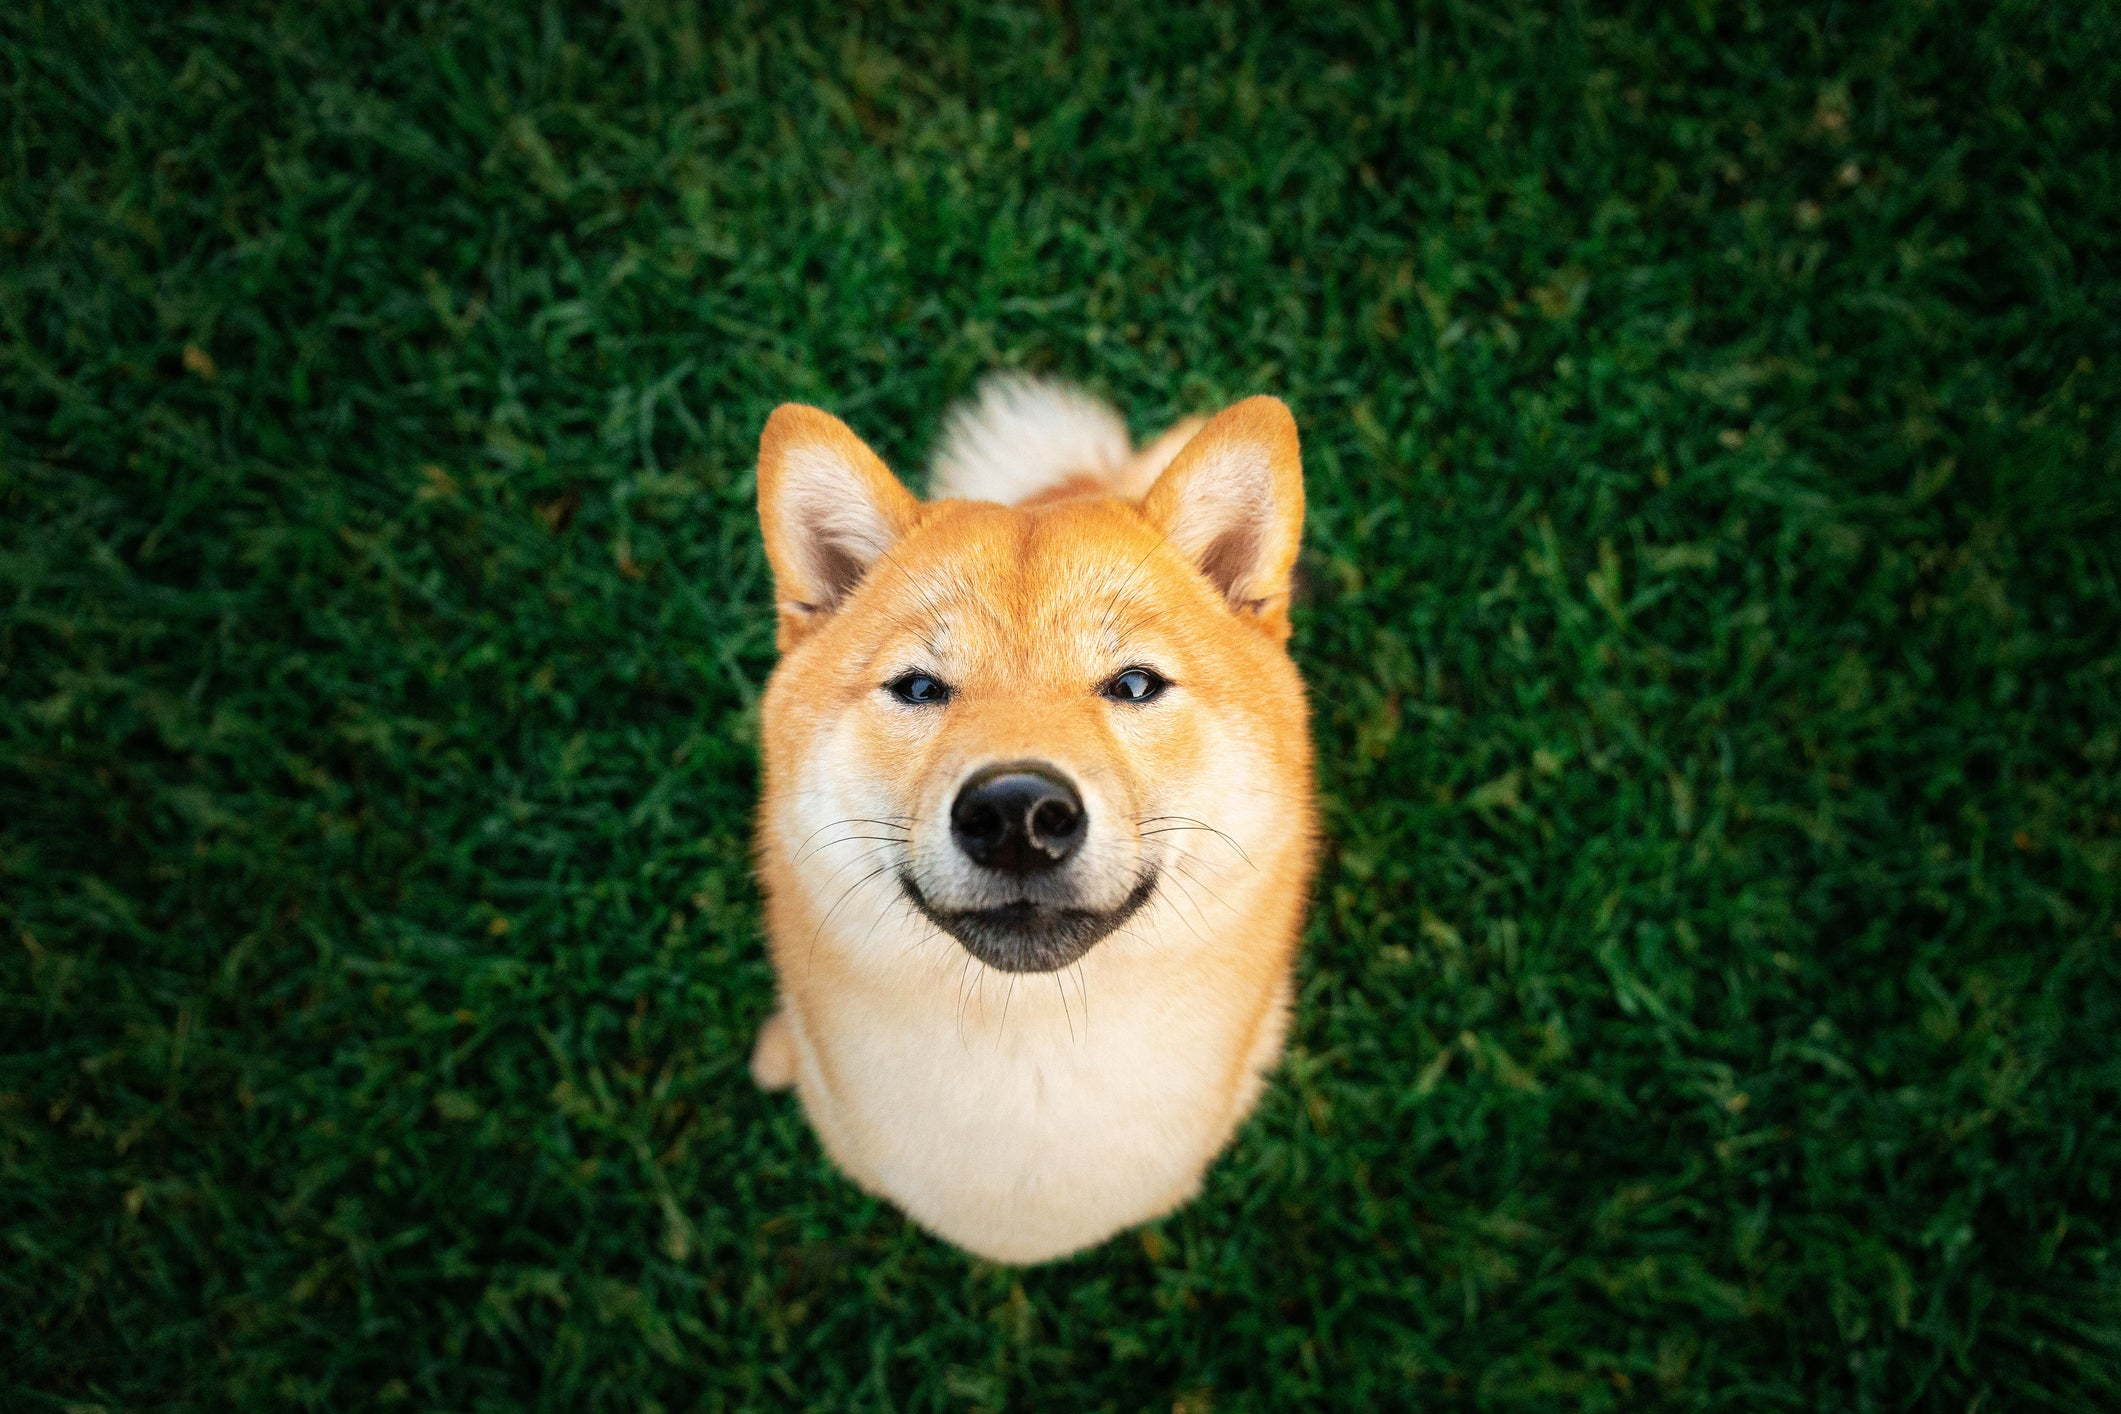 Dump Dogecoin: These Growth Stocks Are Ready to Blast Off